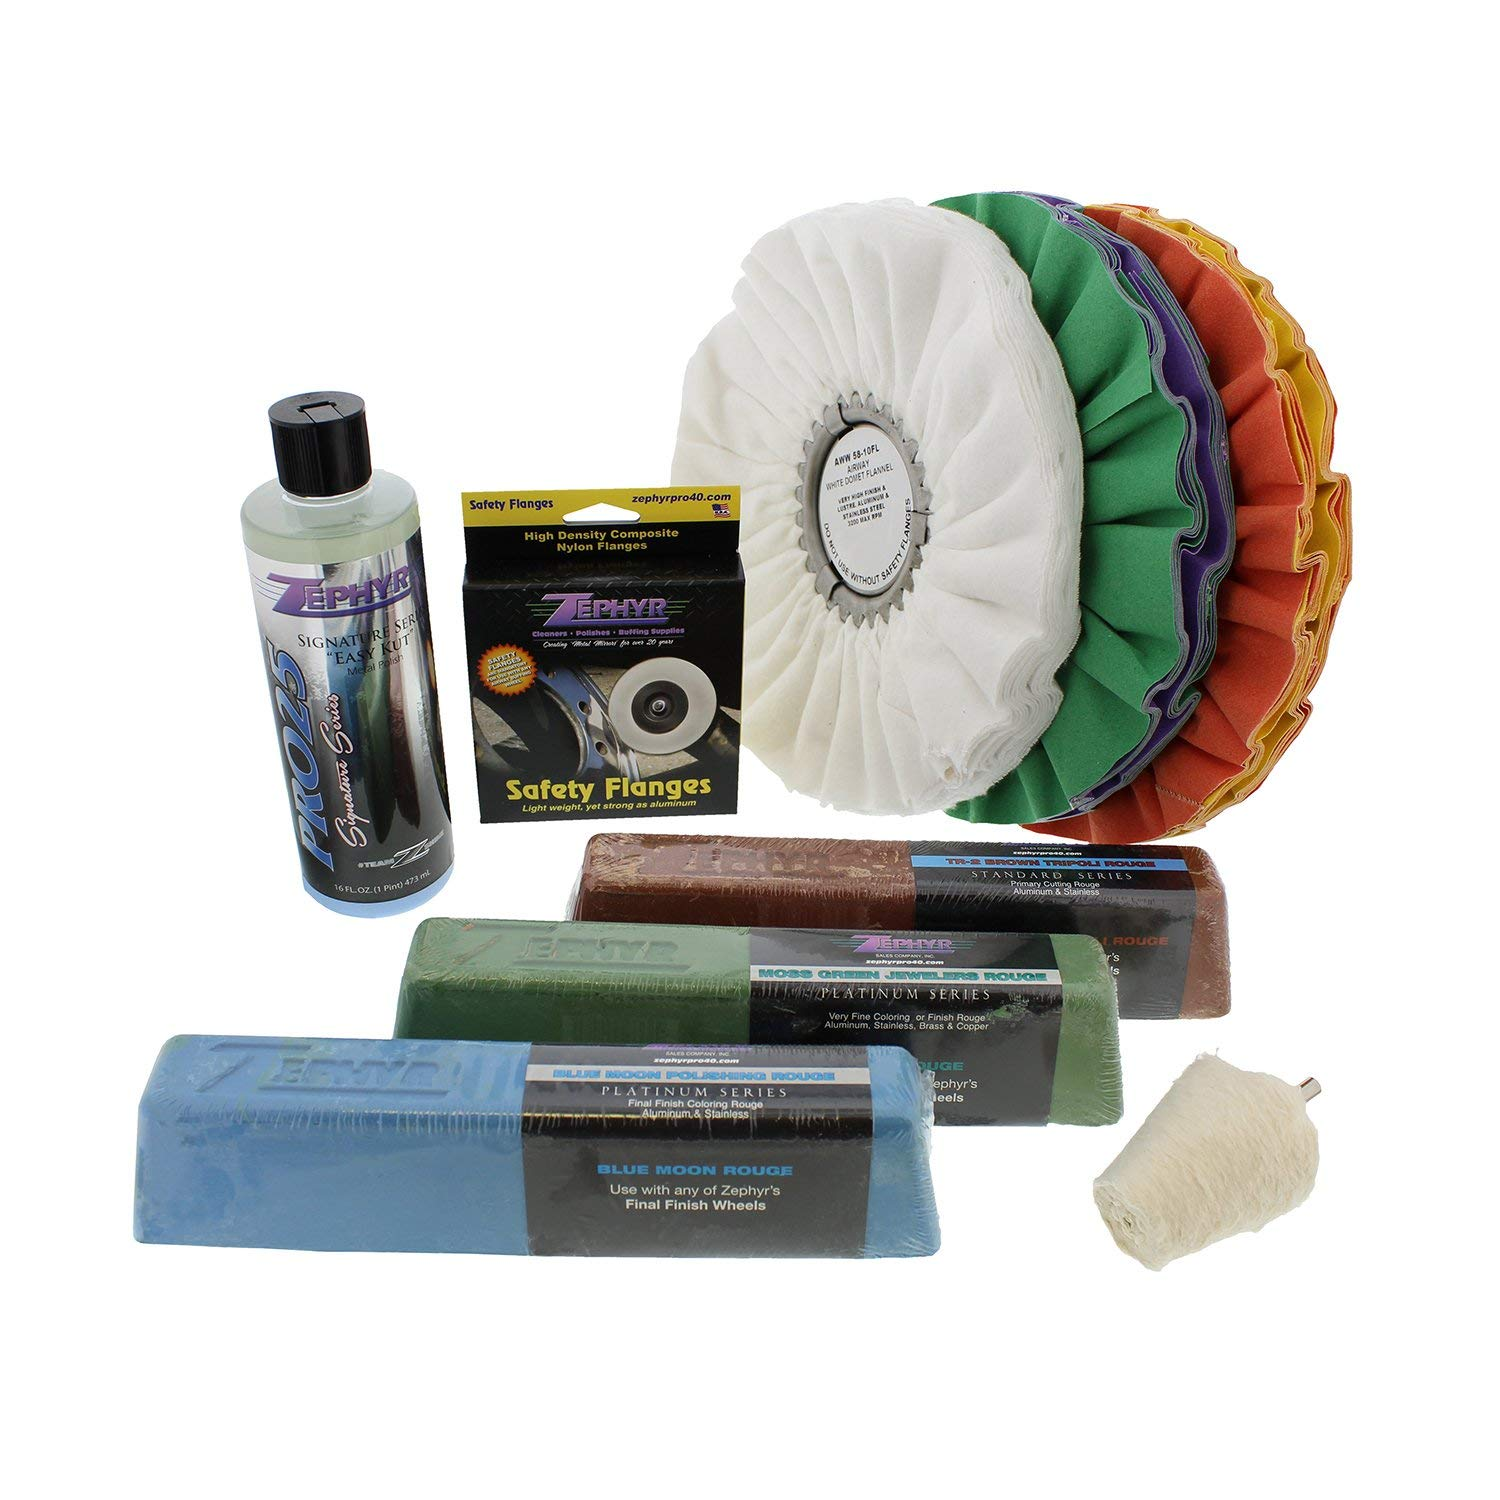 Zephyr Ultra Shine Polishing Kit with 2'' Extender for Airway Buffing Wheels